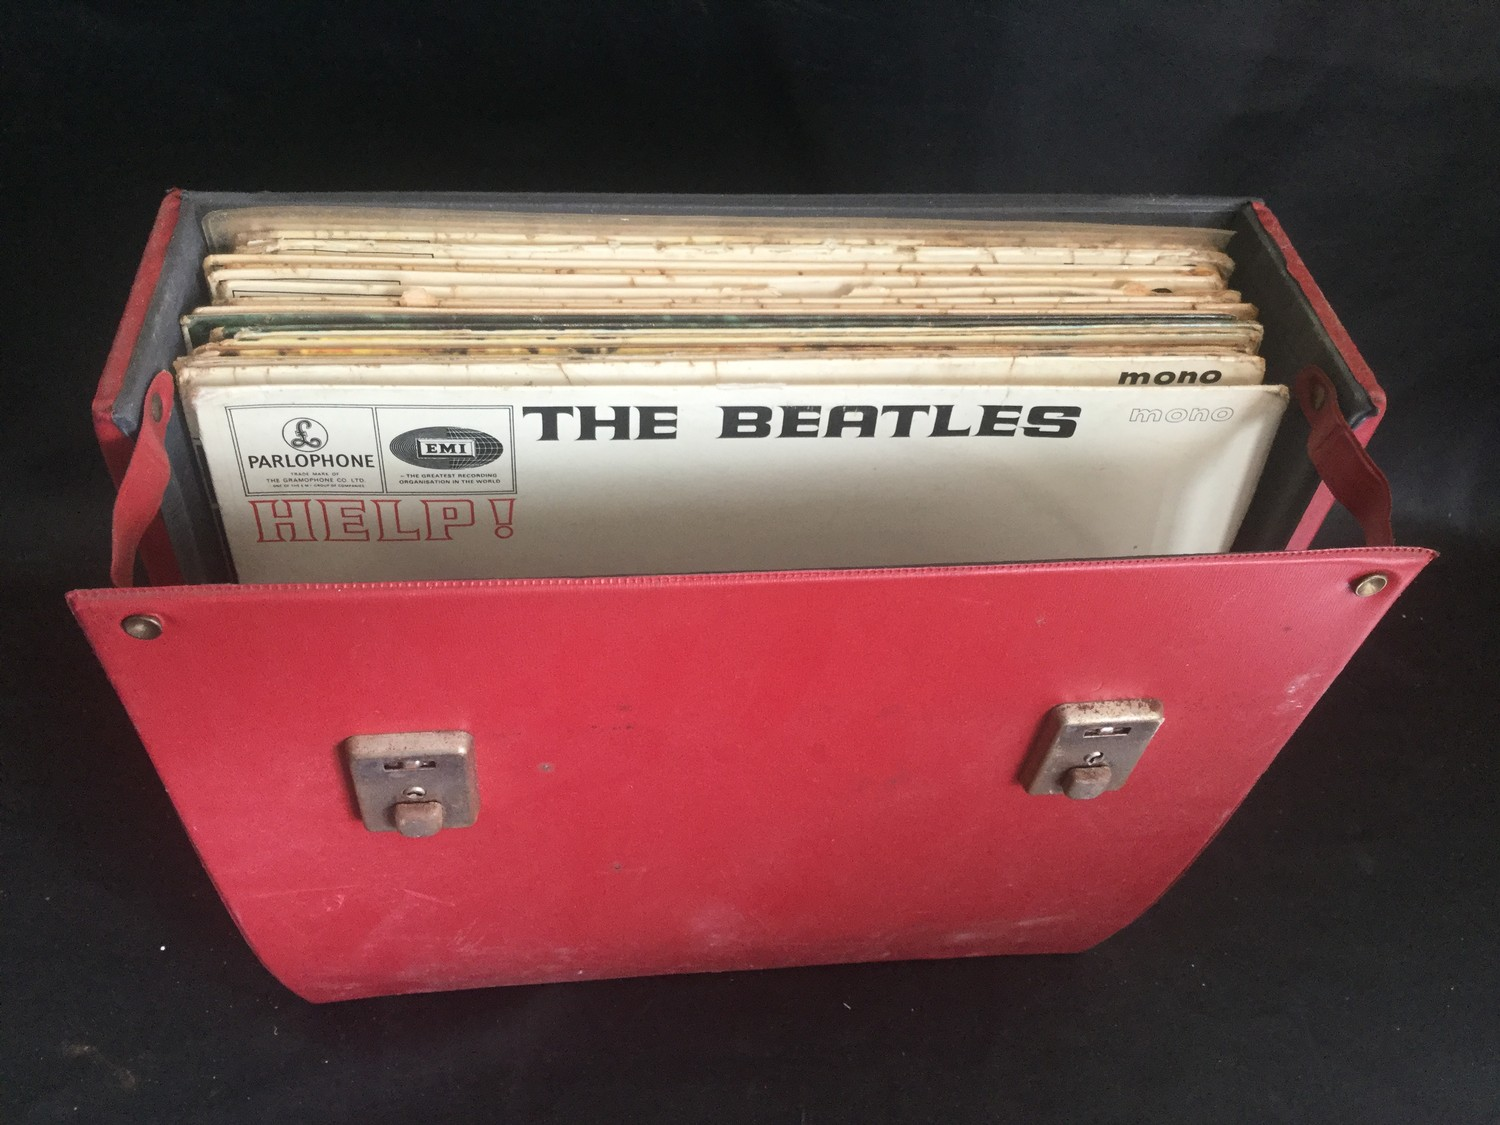 CARRY CASE OF VARIOUS BEATLES ALBUMS. We have 19 in total here with single & multiple copies of